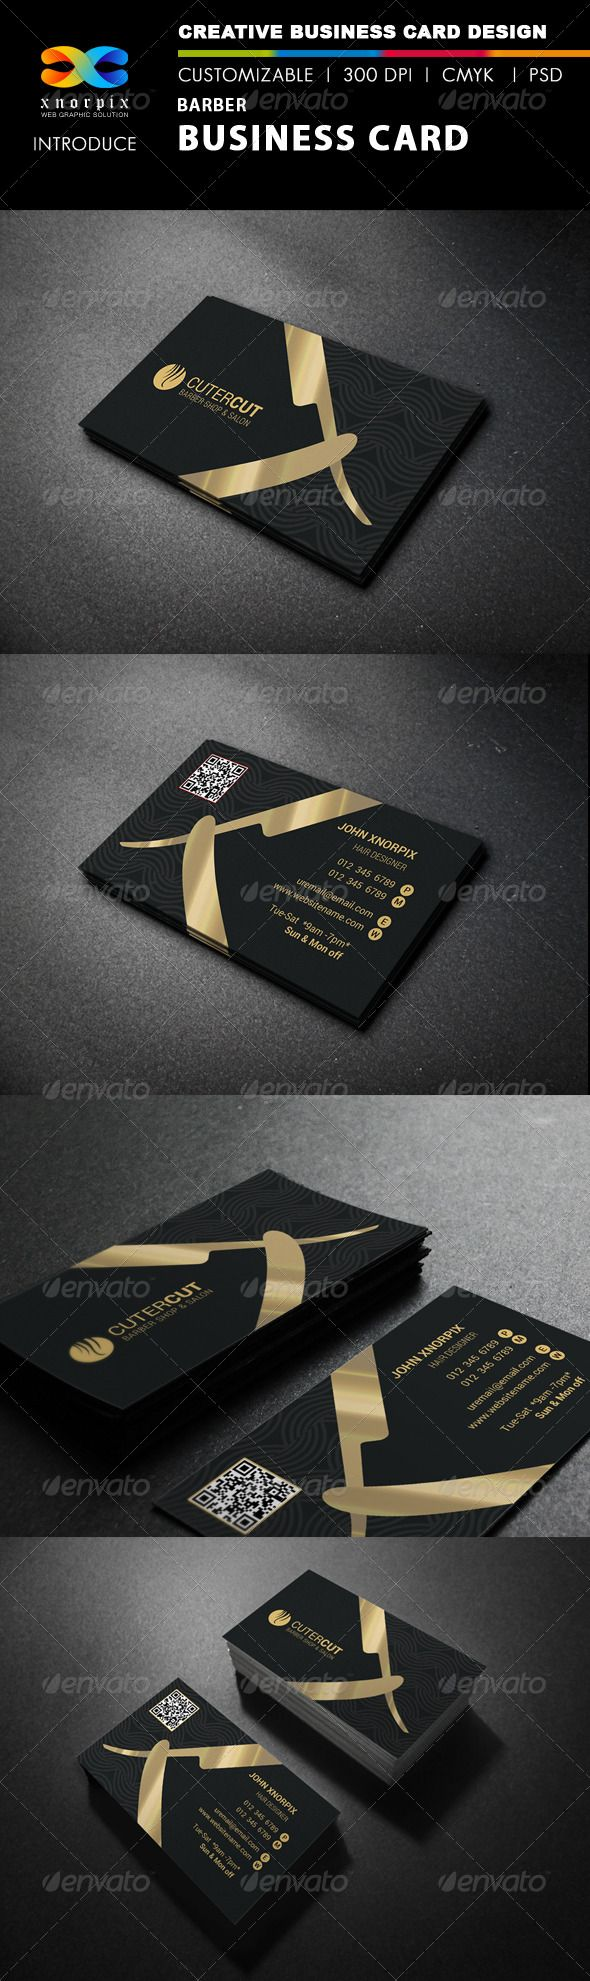 Barber business card business card templates designs pinterest barber business card friedricerecipe Choice Image